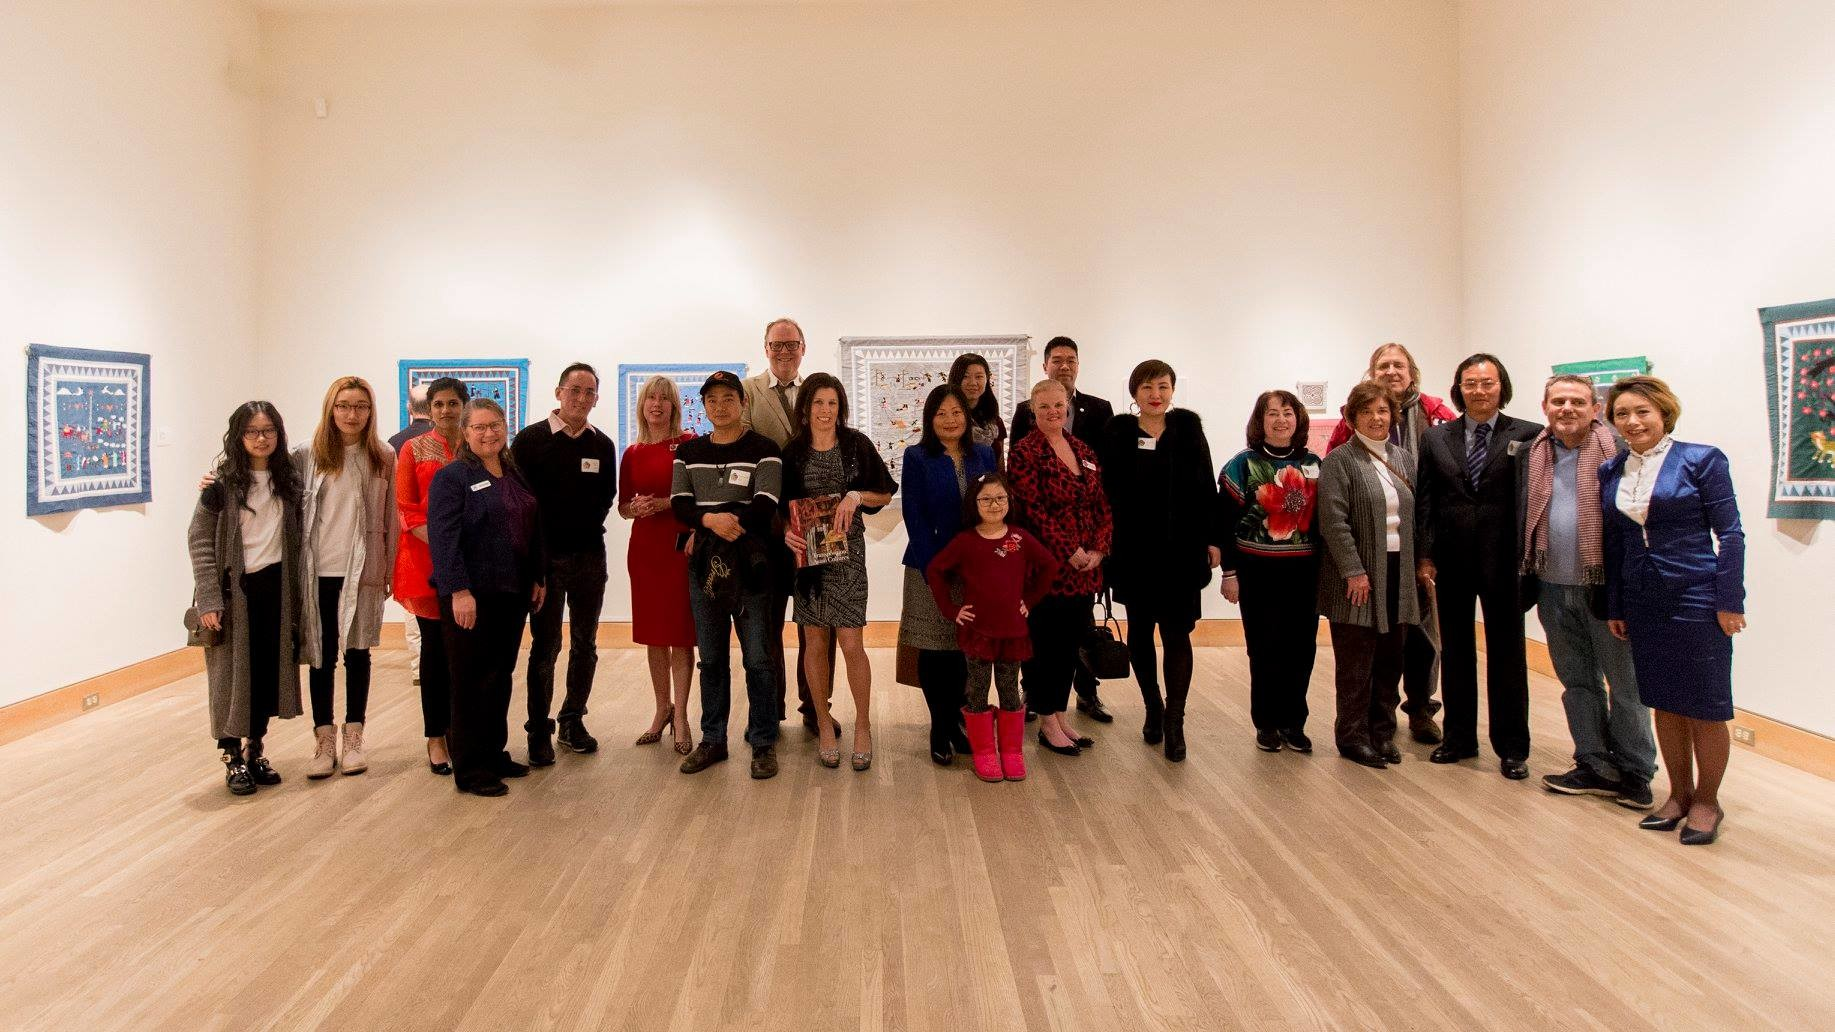 The Opening Reception for Arts of Asia and the Peninsula Fine Arts Center